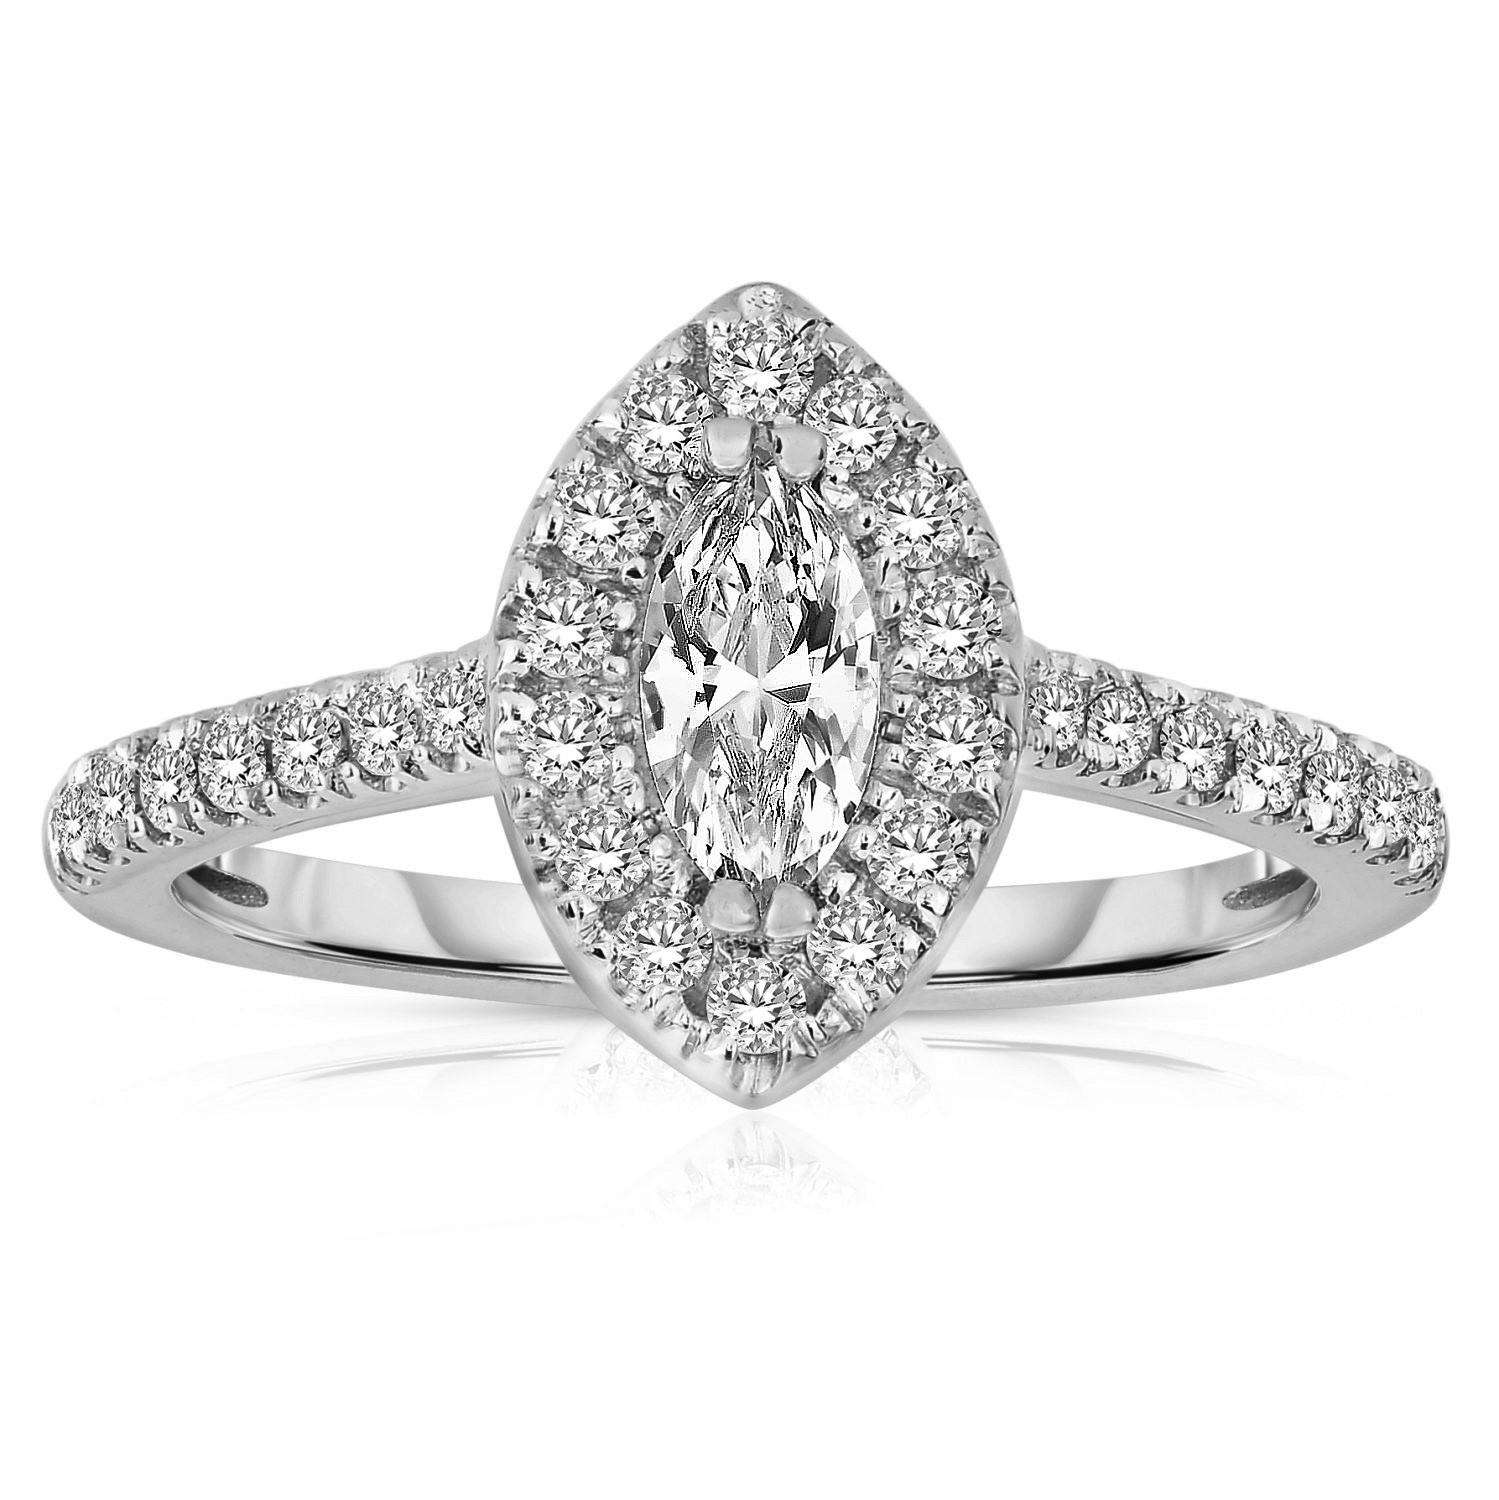 scale boston the upscale shop subsampling marquise ring product anaya rings fingers crop short false cut diamond rachel engagement